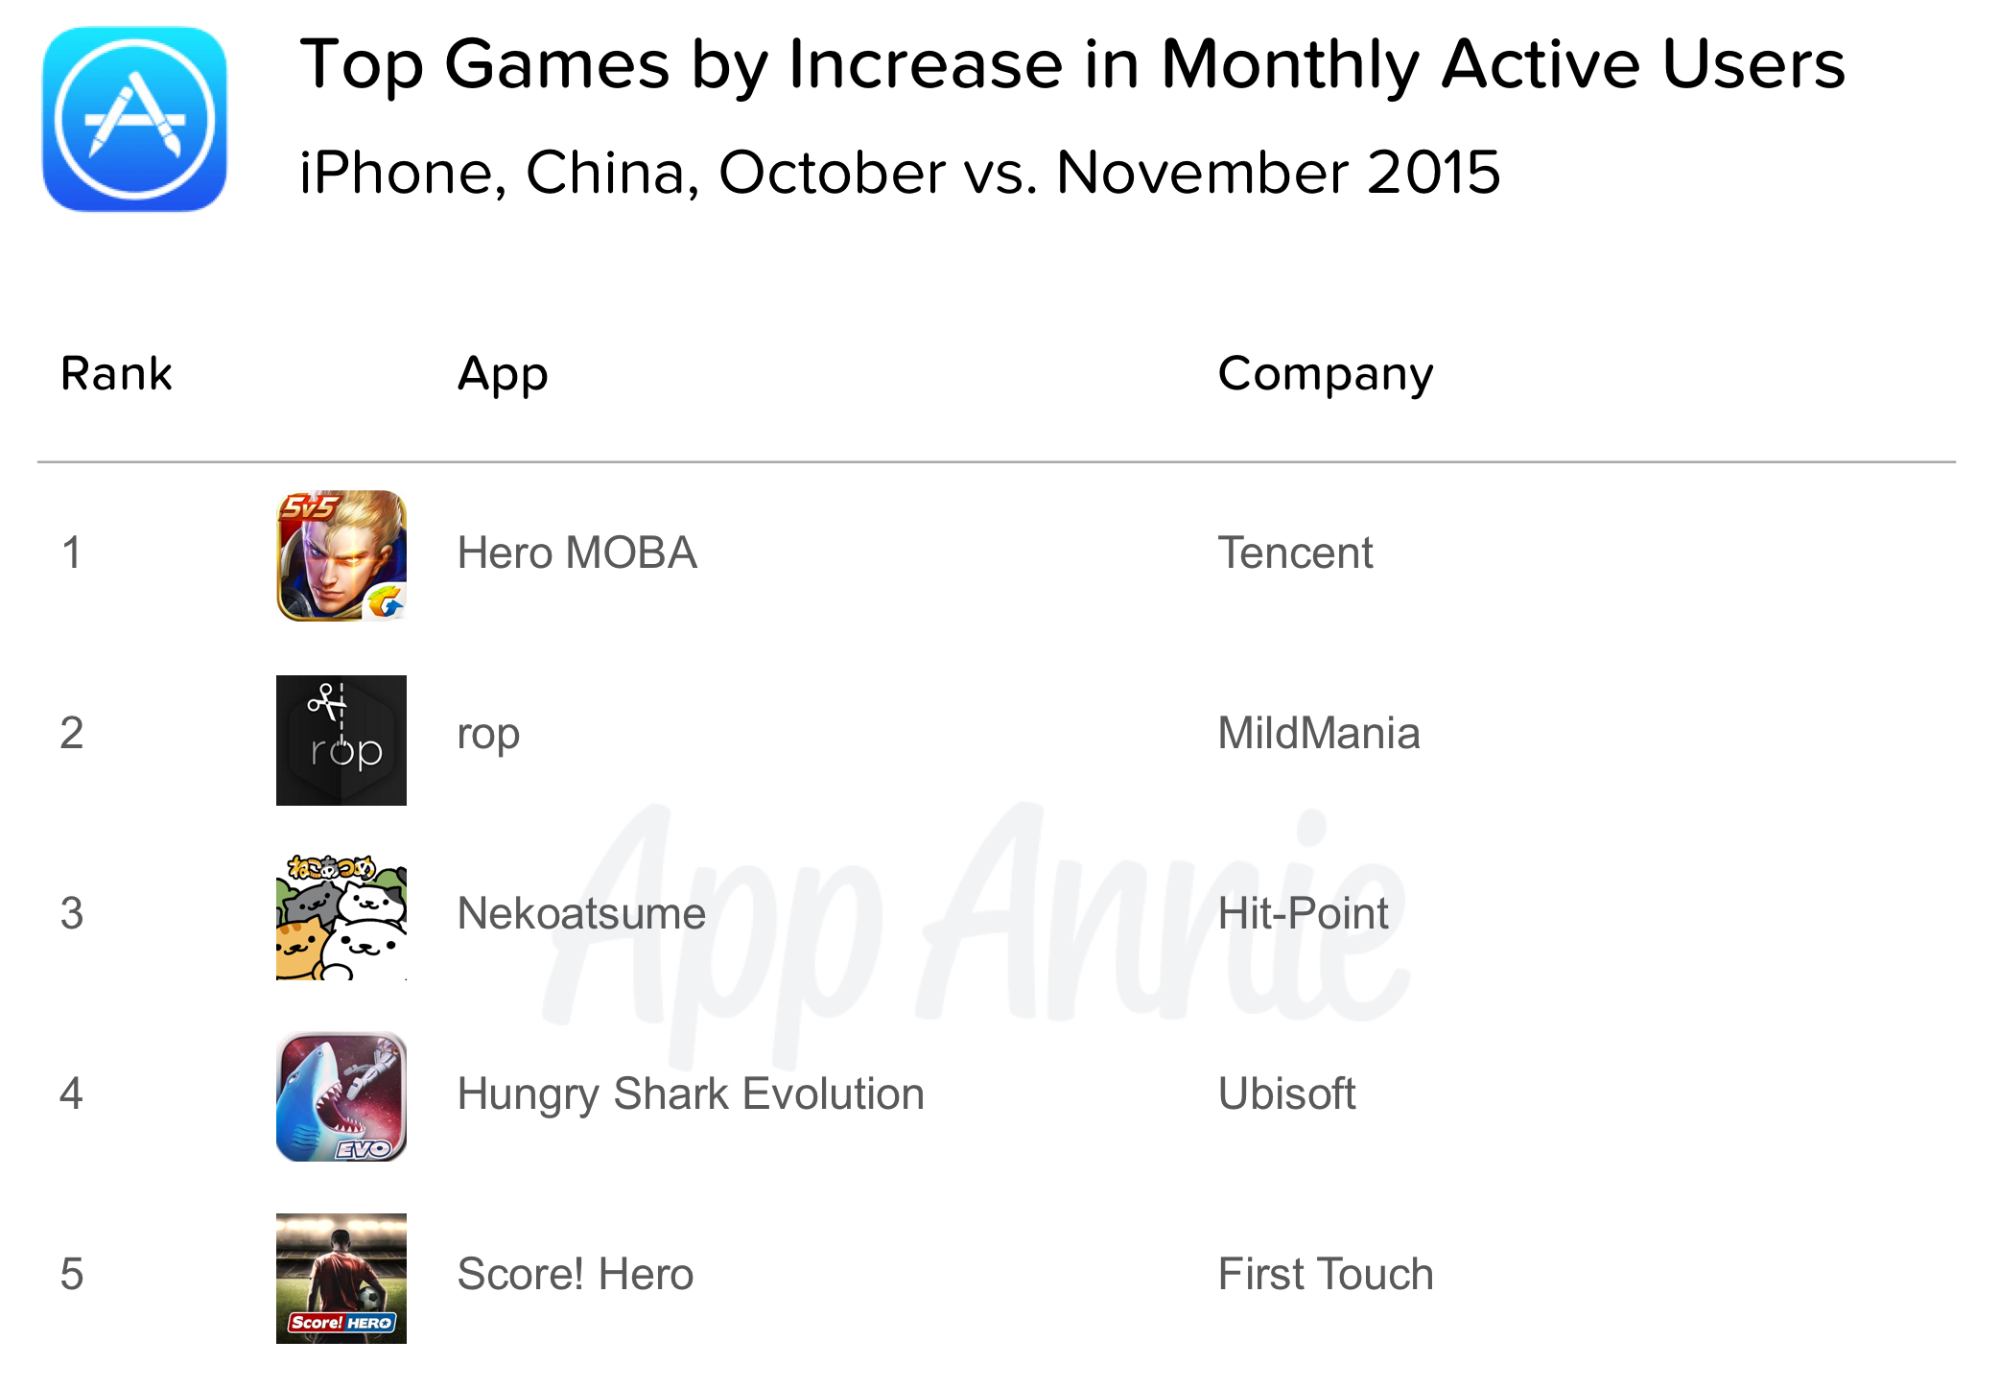 Top Games Increase MAU iPhone China October 2015 vs November 2015